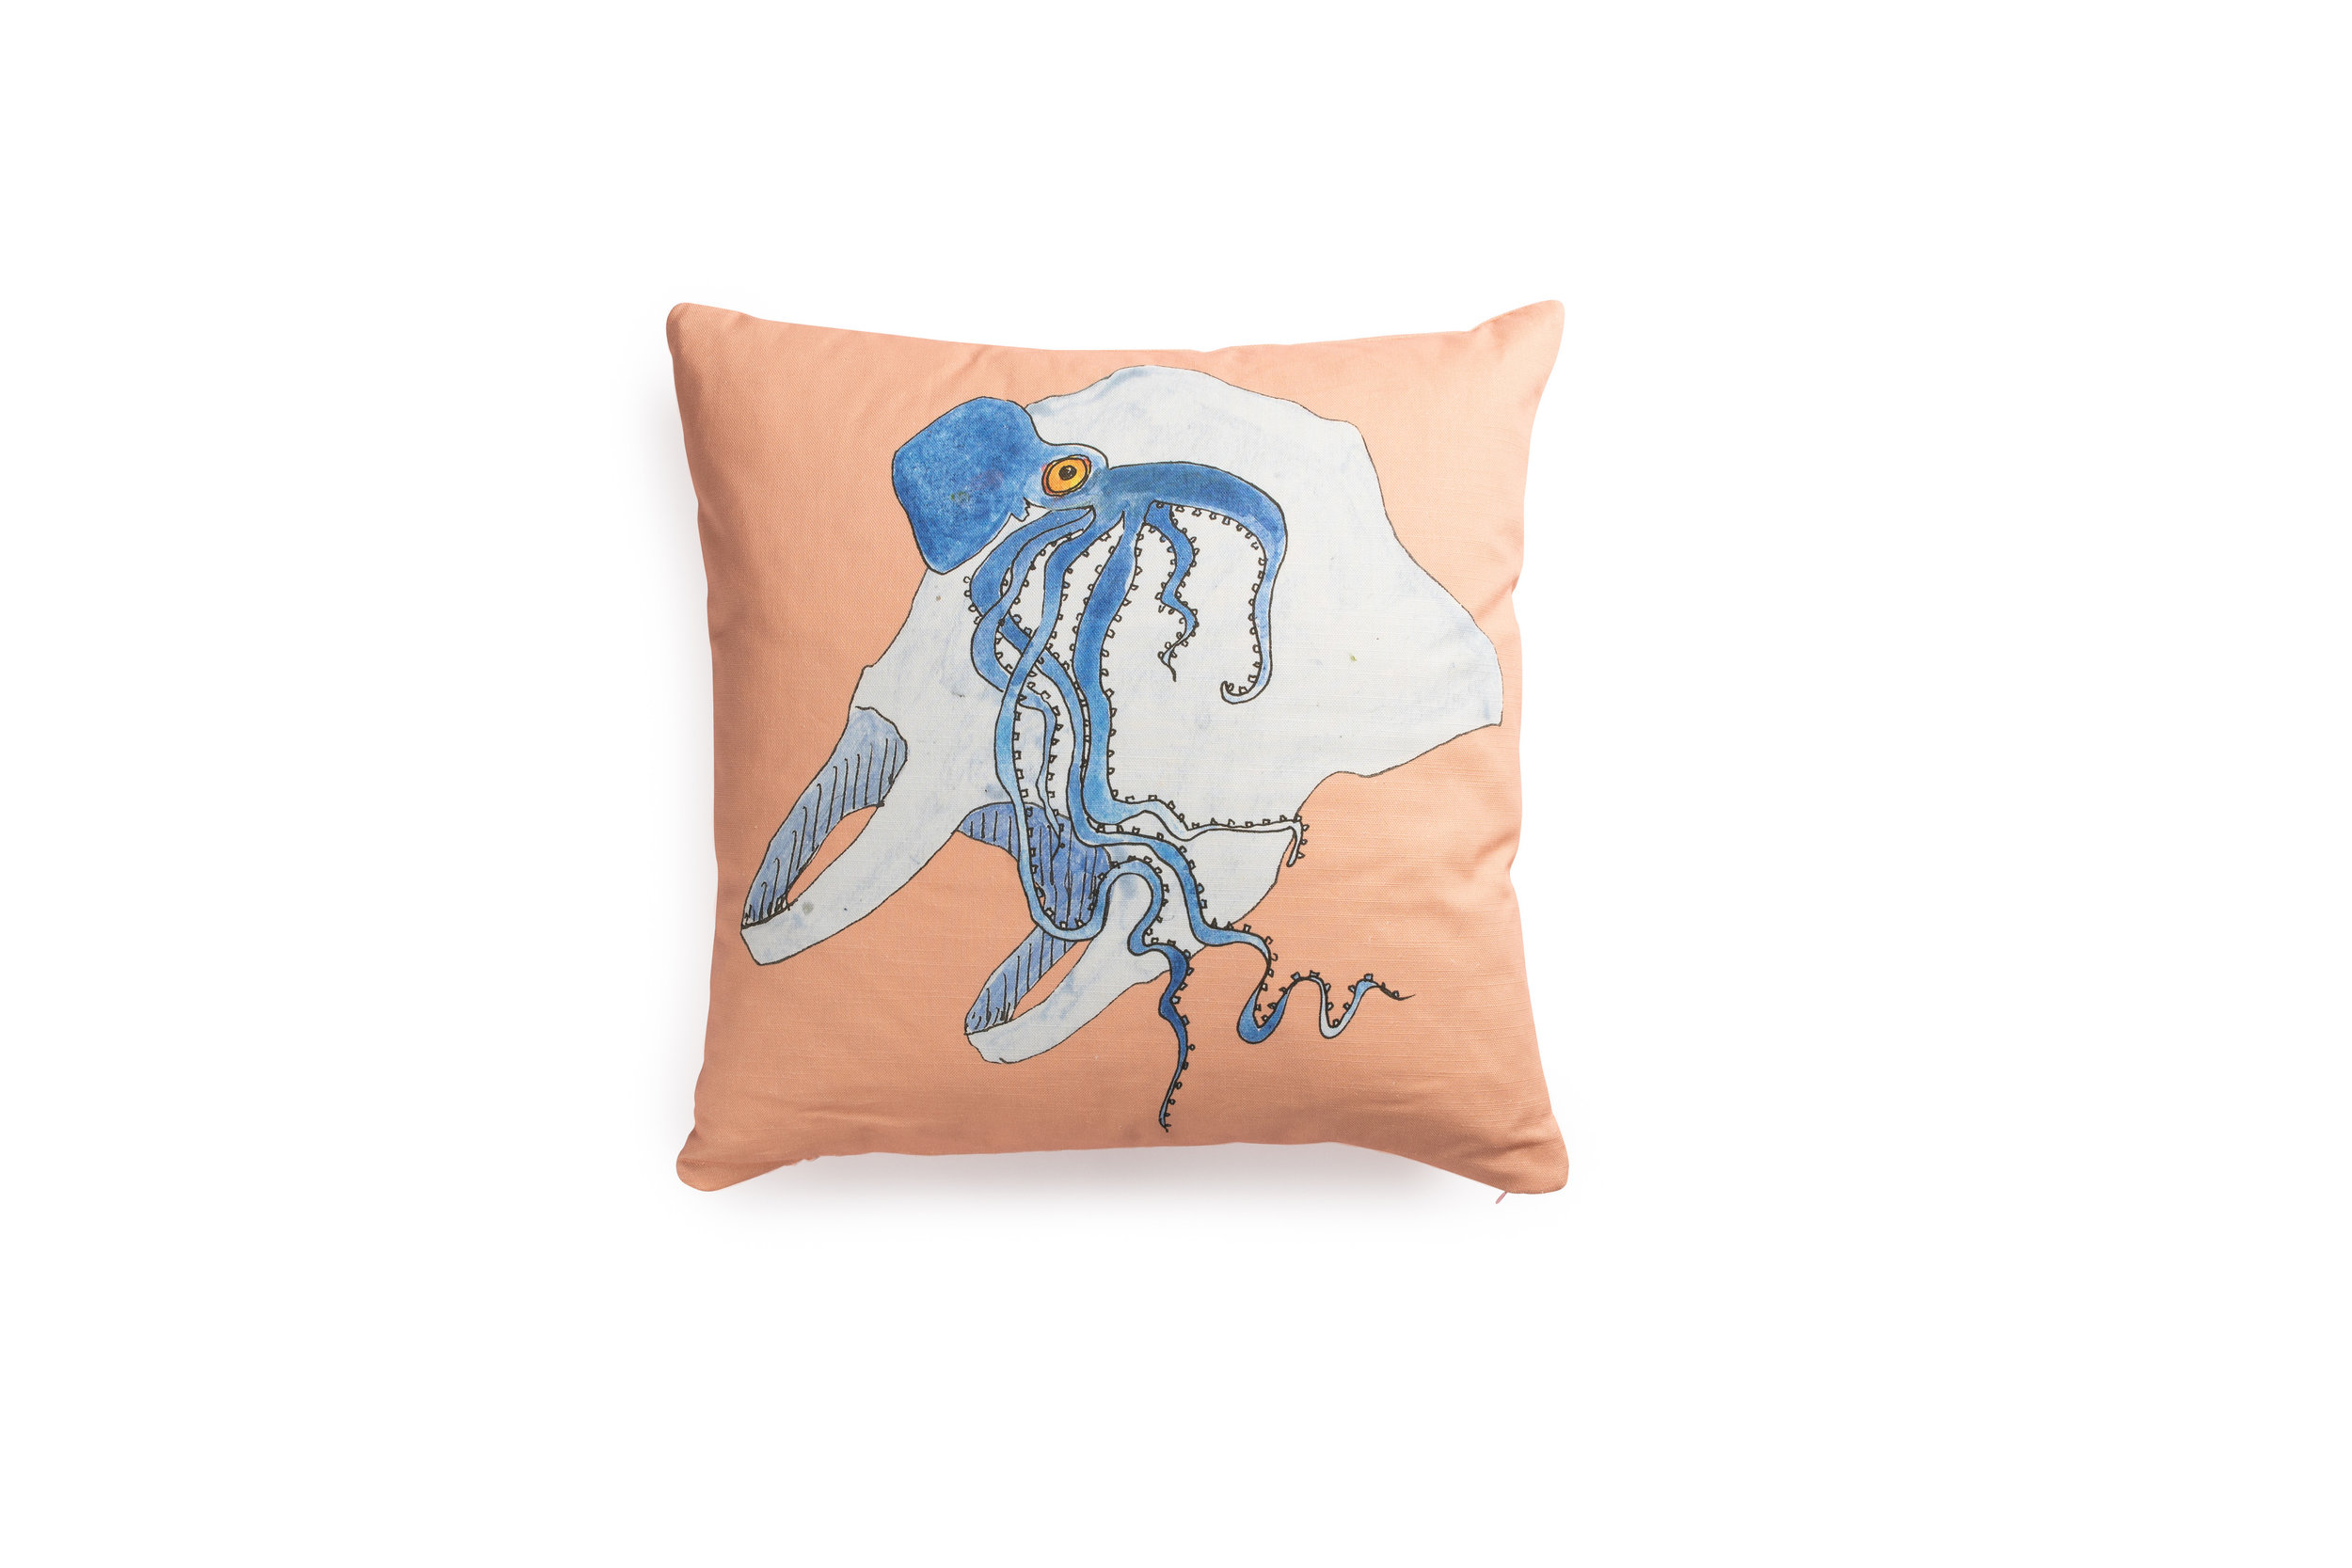 Pink Cushion with Octo by Anna Surie